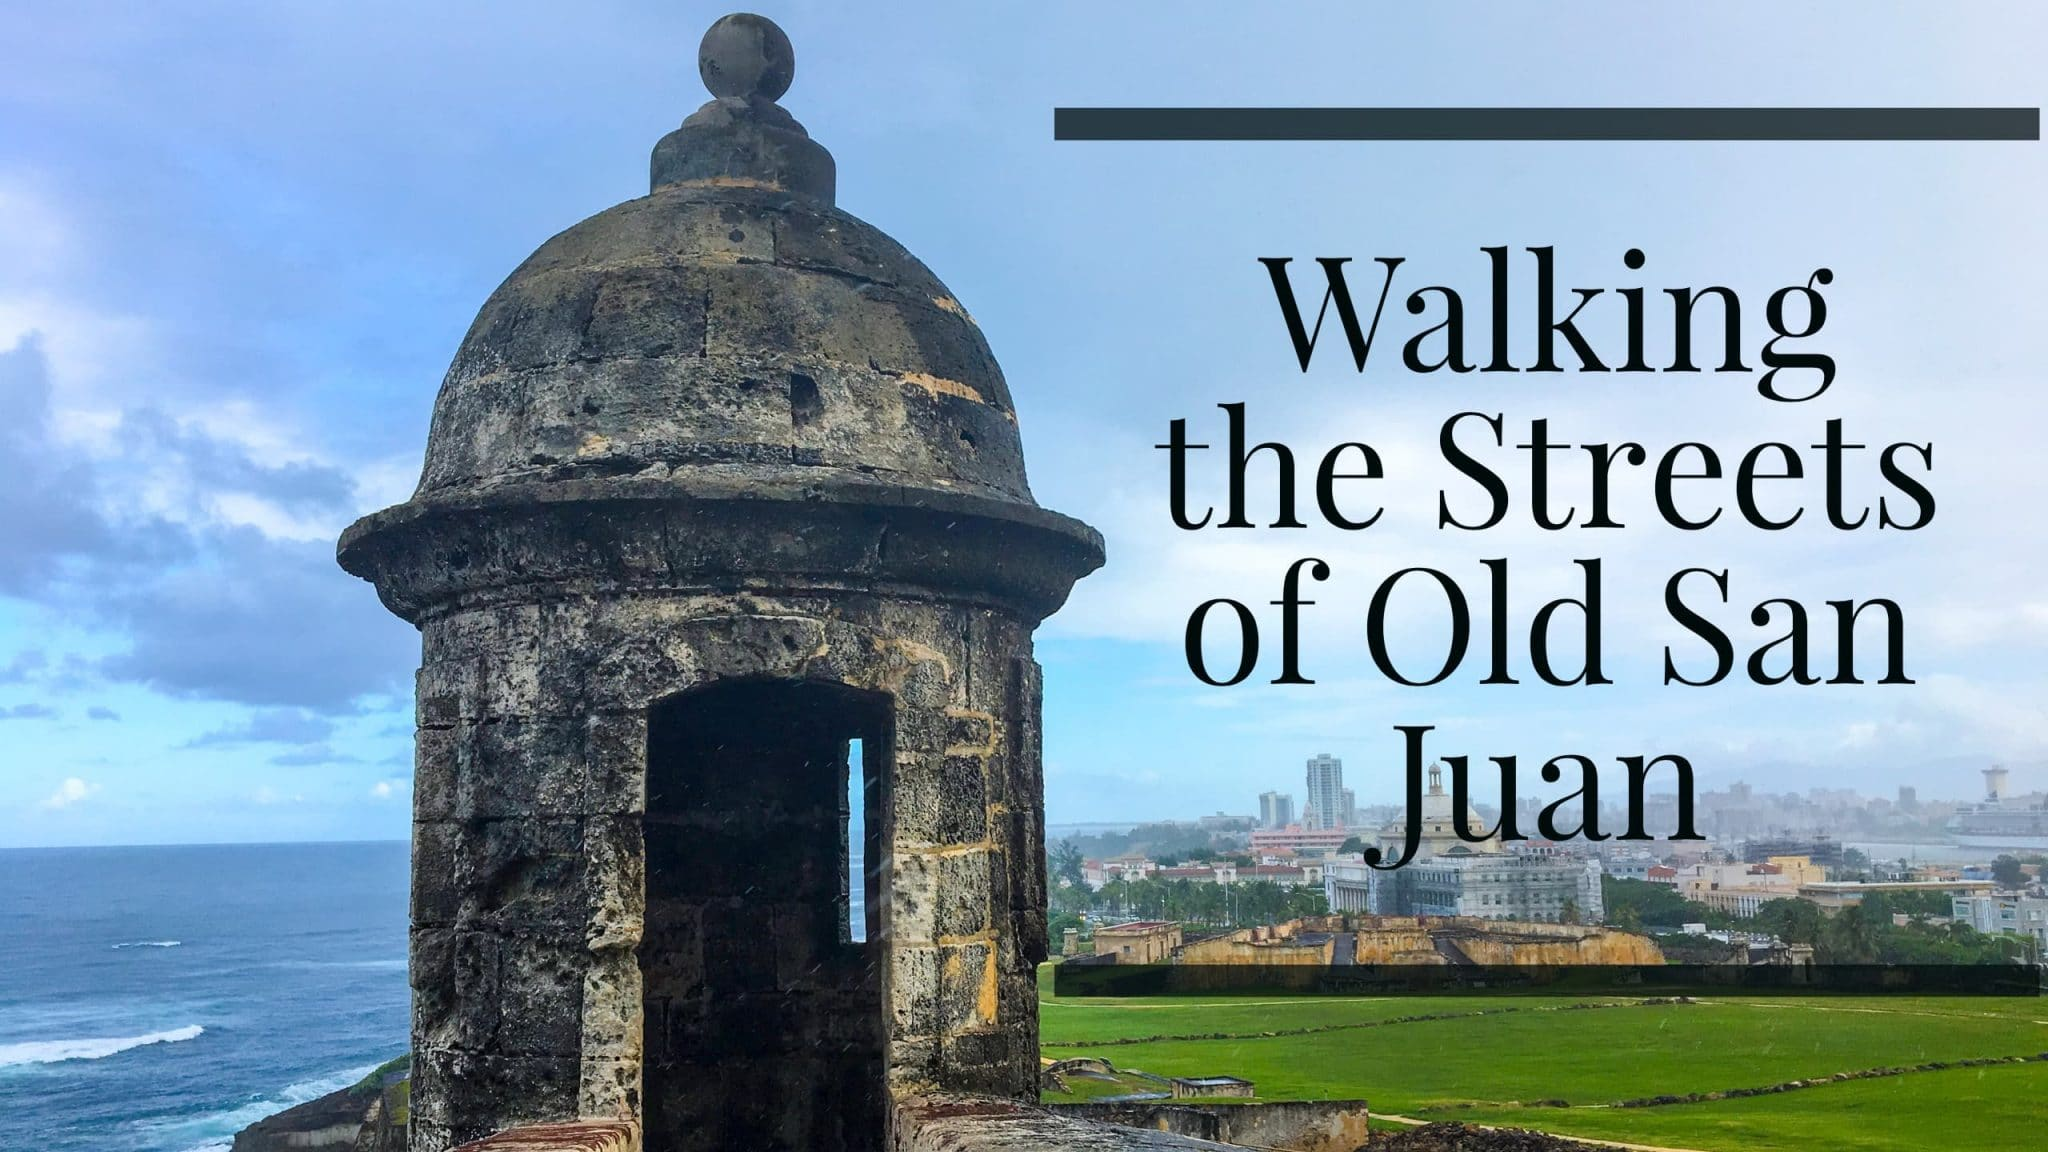 Walking the Streets of Old San Juan